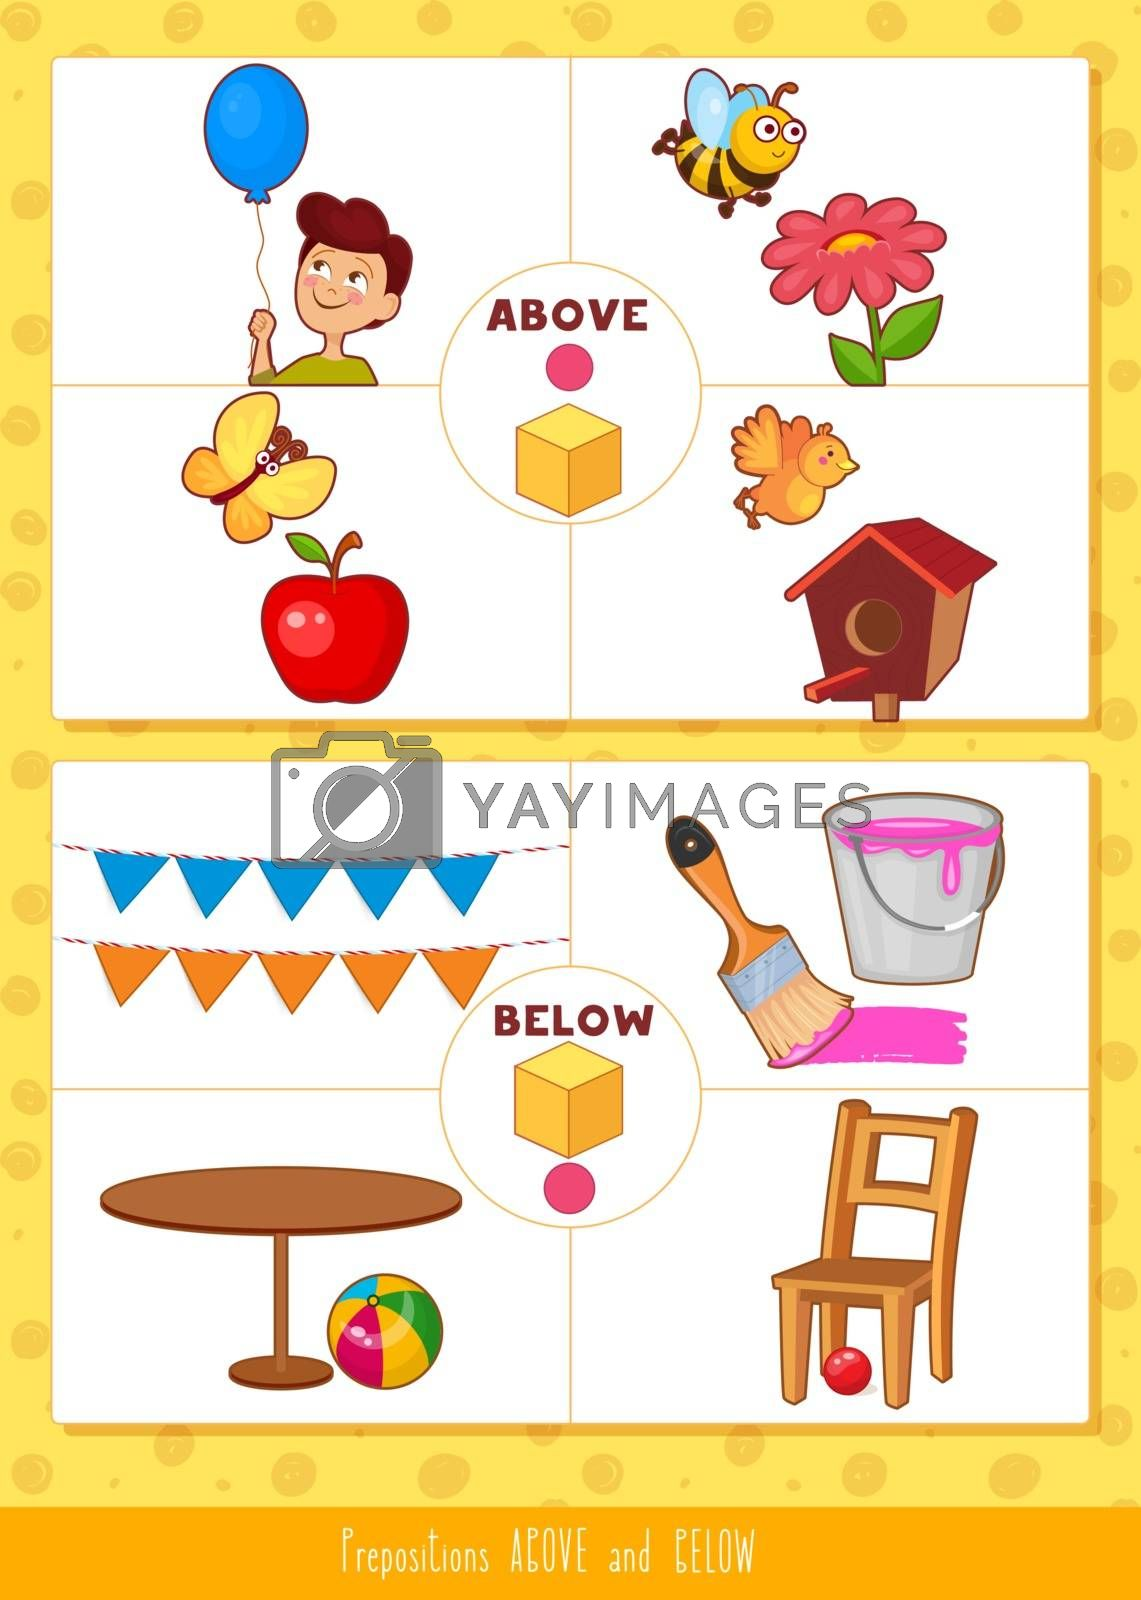 Prepositions above and below by SonneOn